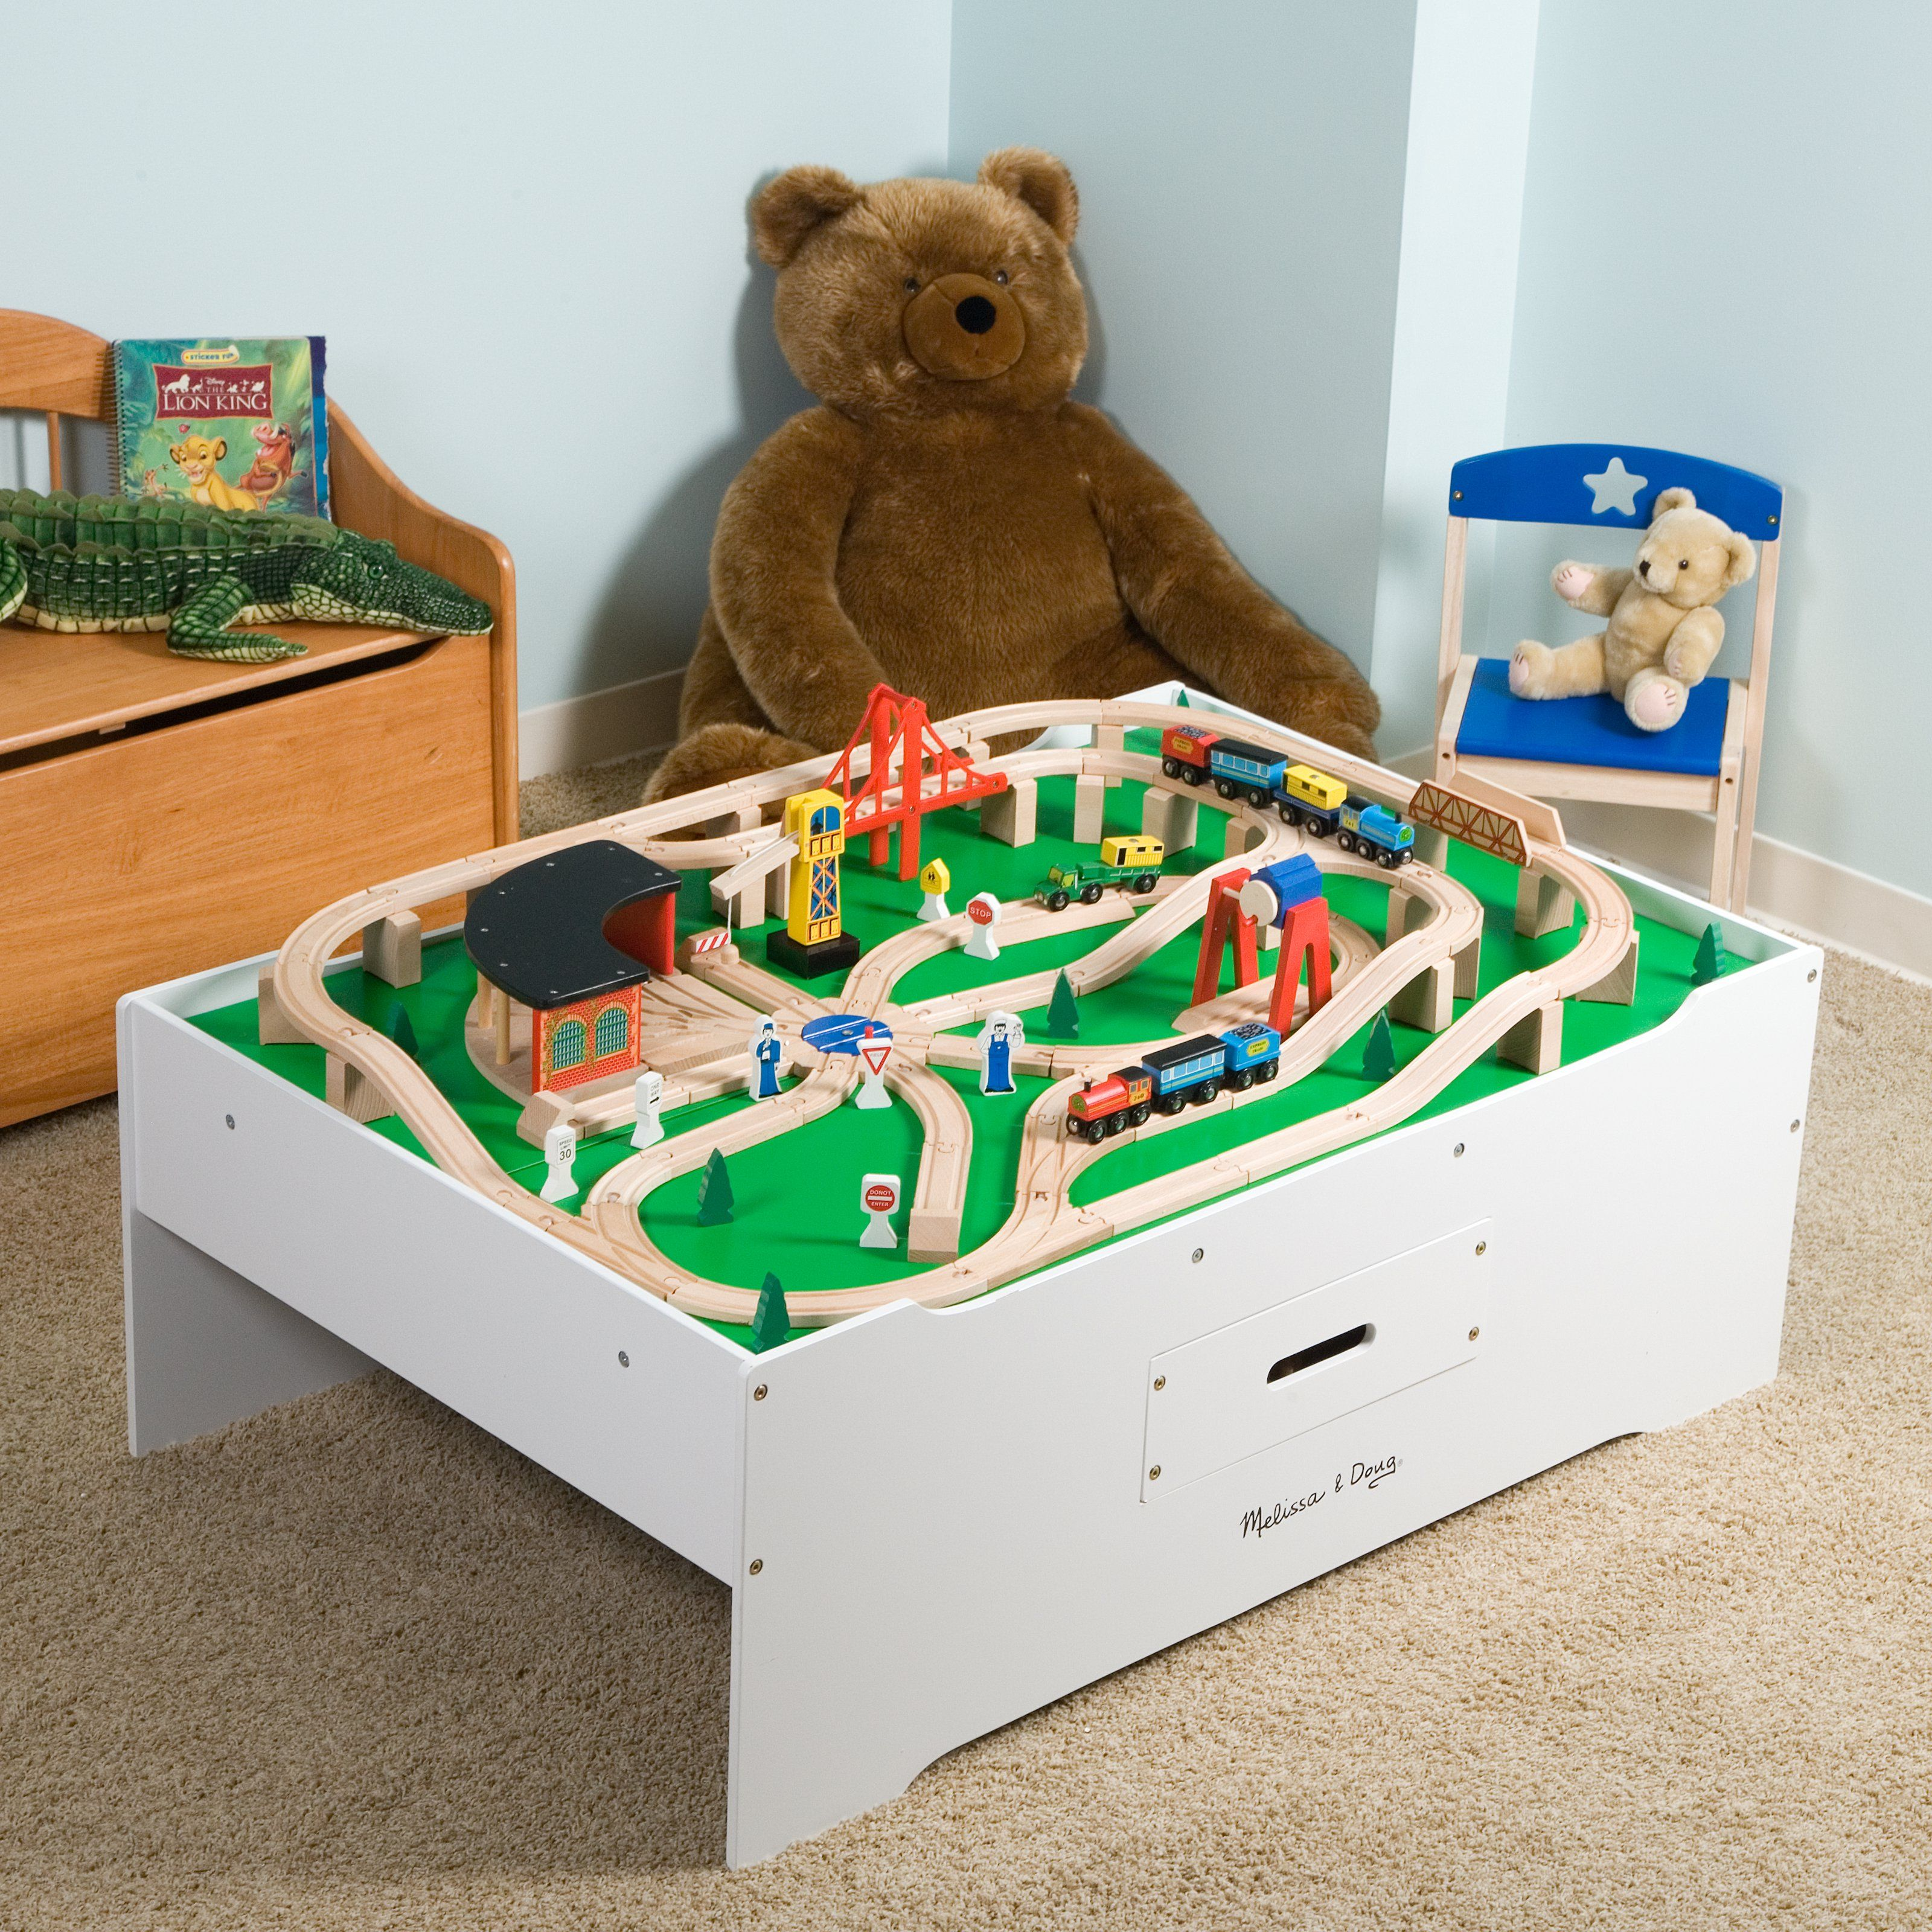 Melissa And Doug Train Table With Optional Railway Set From Hayneedle